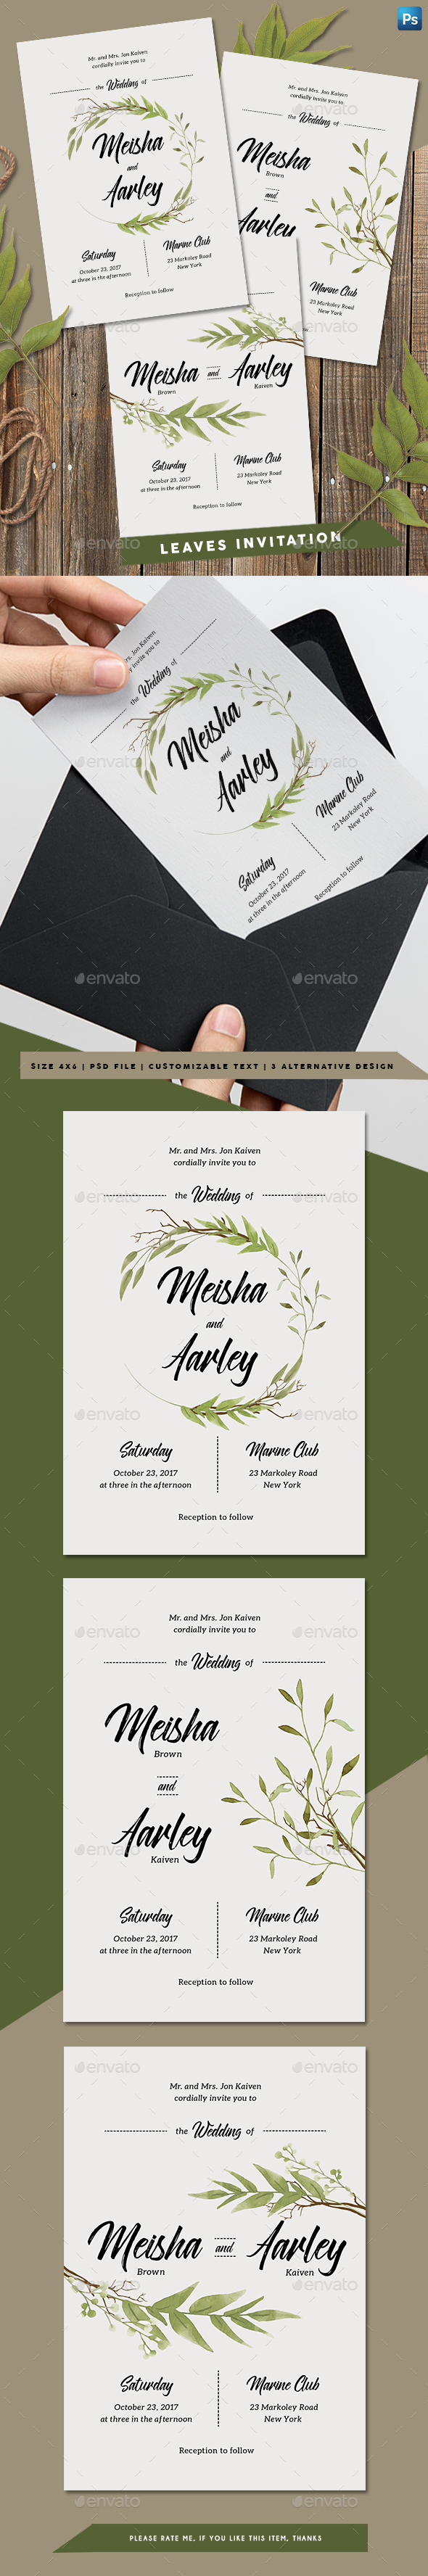 Leaves Invitation - Weddings Cards & Invites